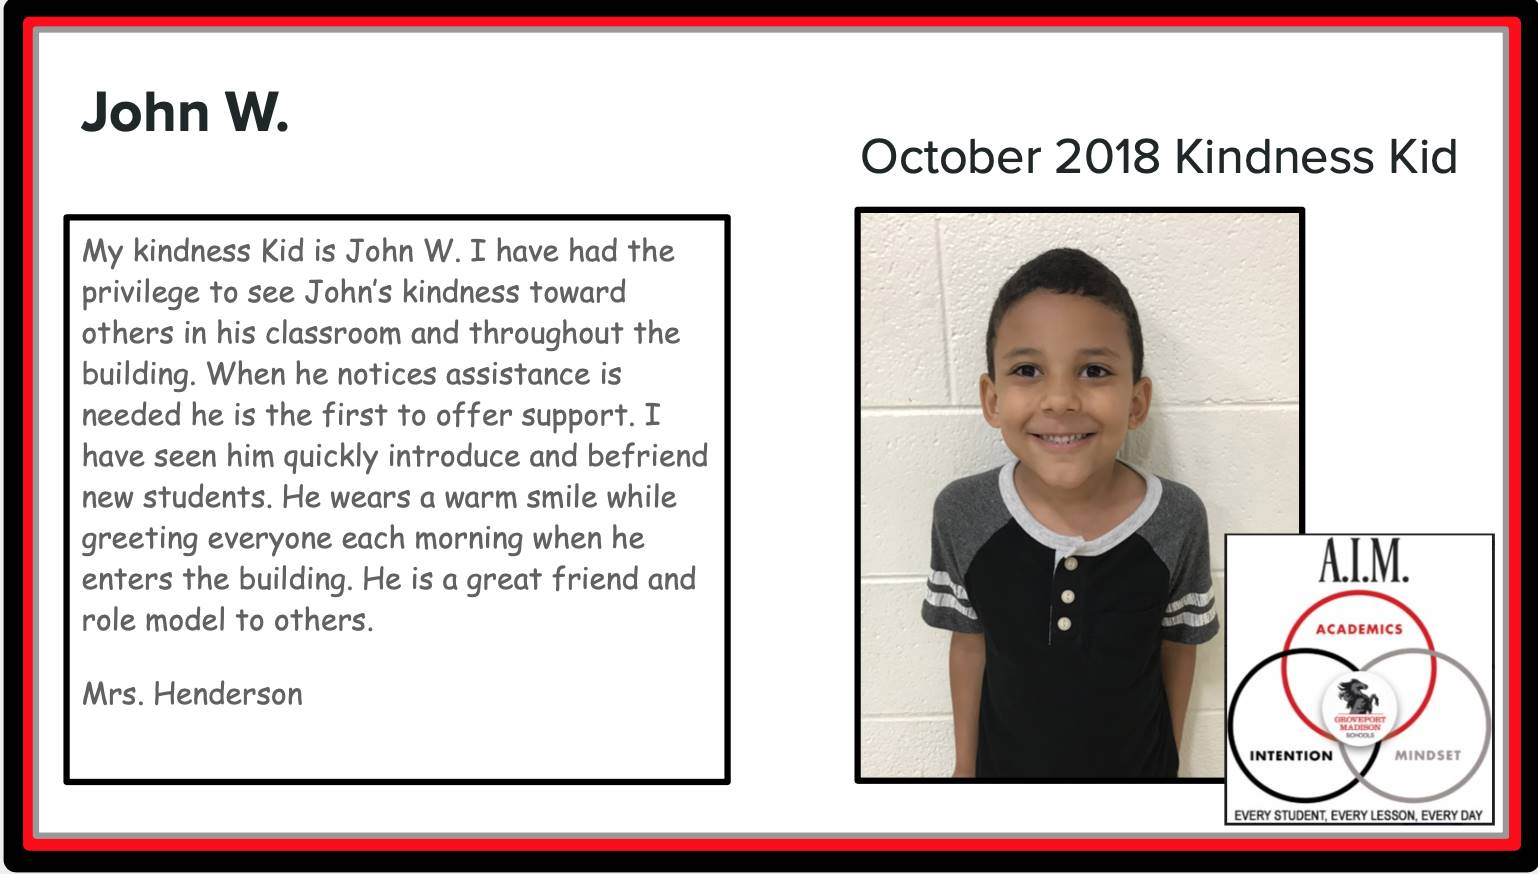 Kindness Kid John